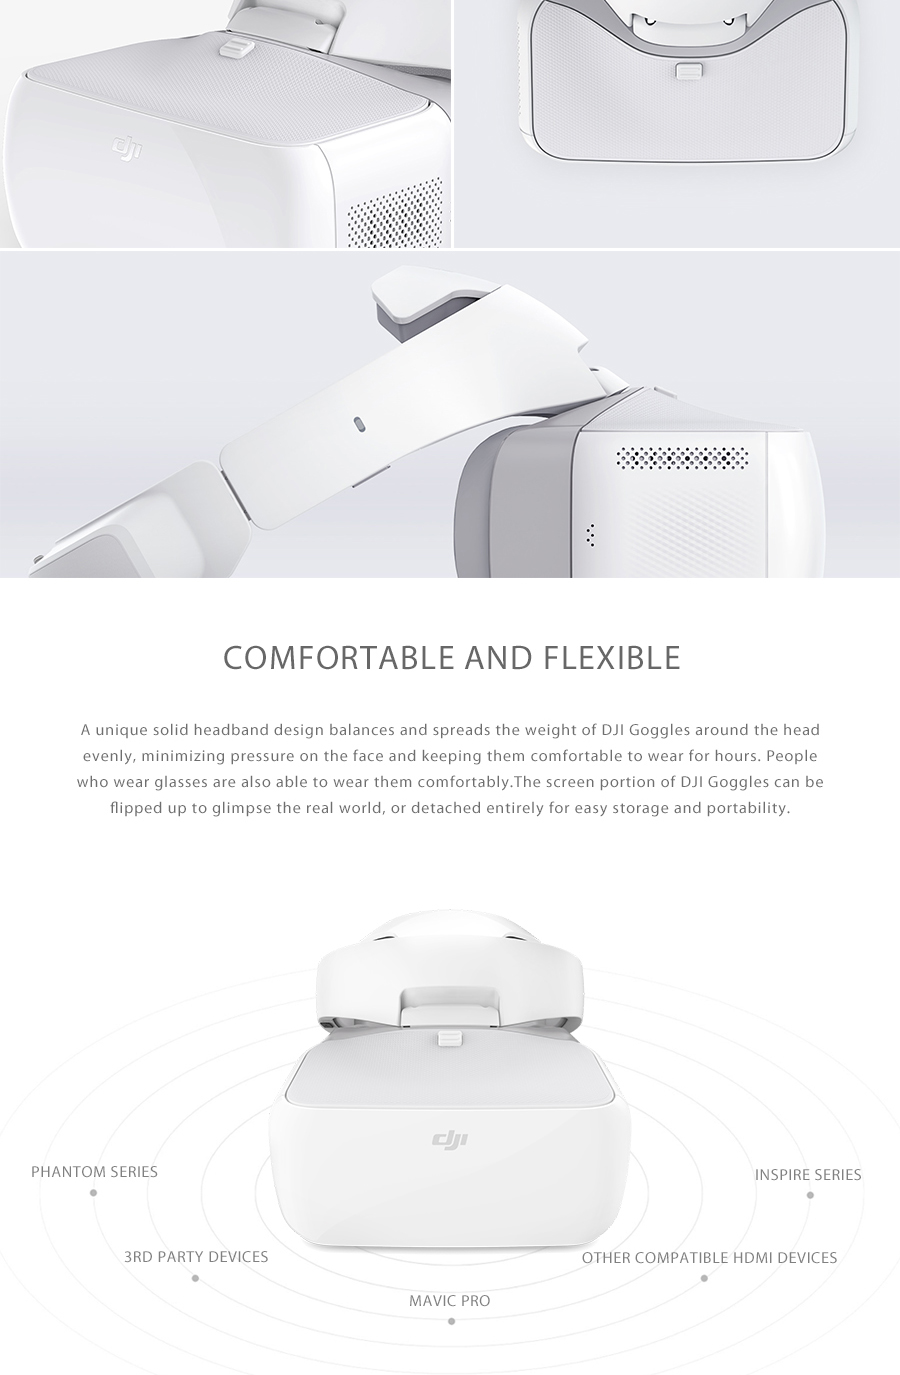 Russia Free Shipping! New 2017 DJI Goggles FPV VR Glasses for DJI Mavic pro Fly phantom 4 pro DJI Inspire Drone Quadcopters